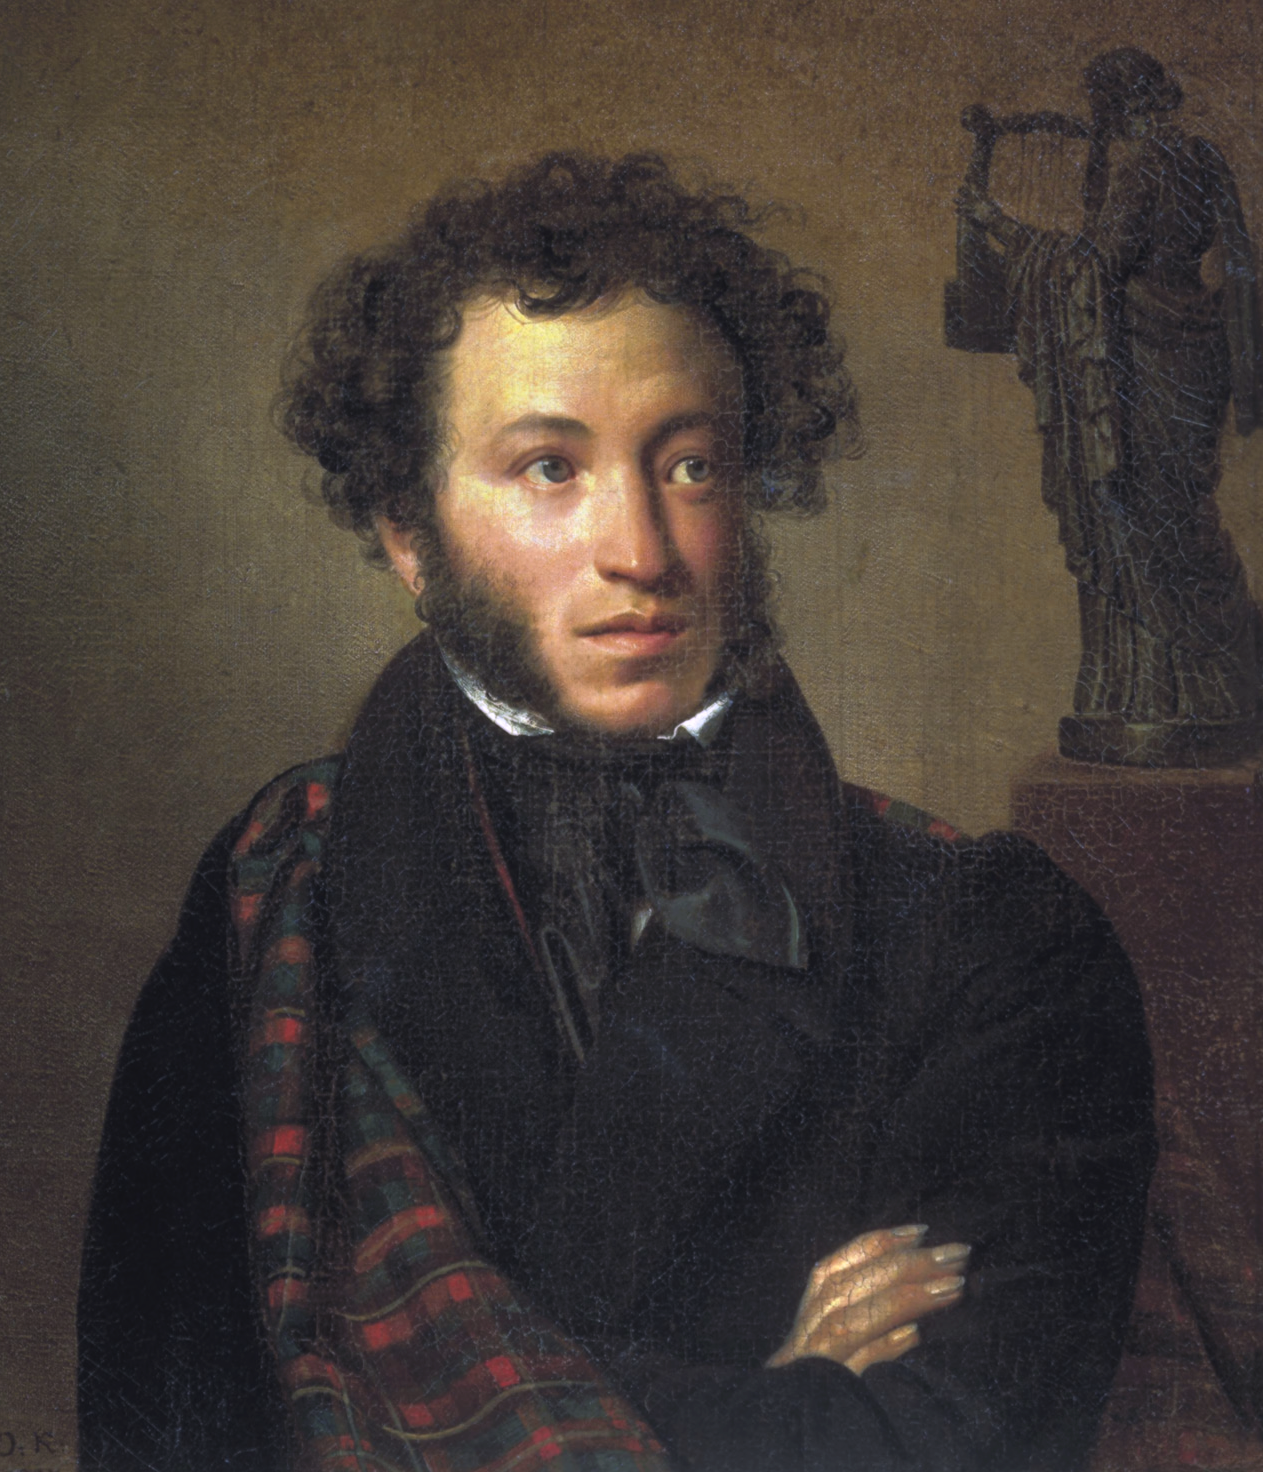 Portrait_of_Alexander_Pushkin_%28Orest_K